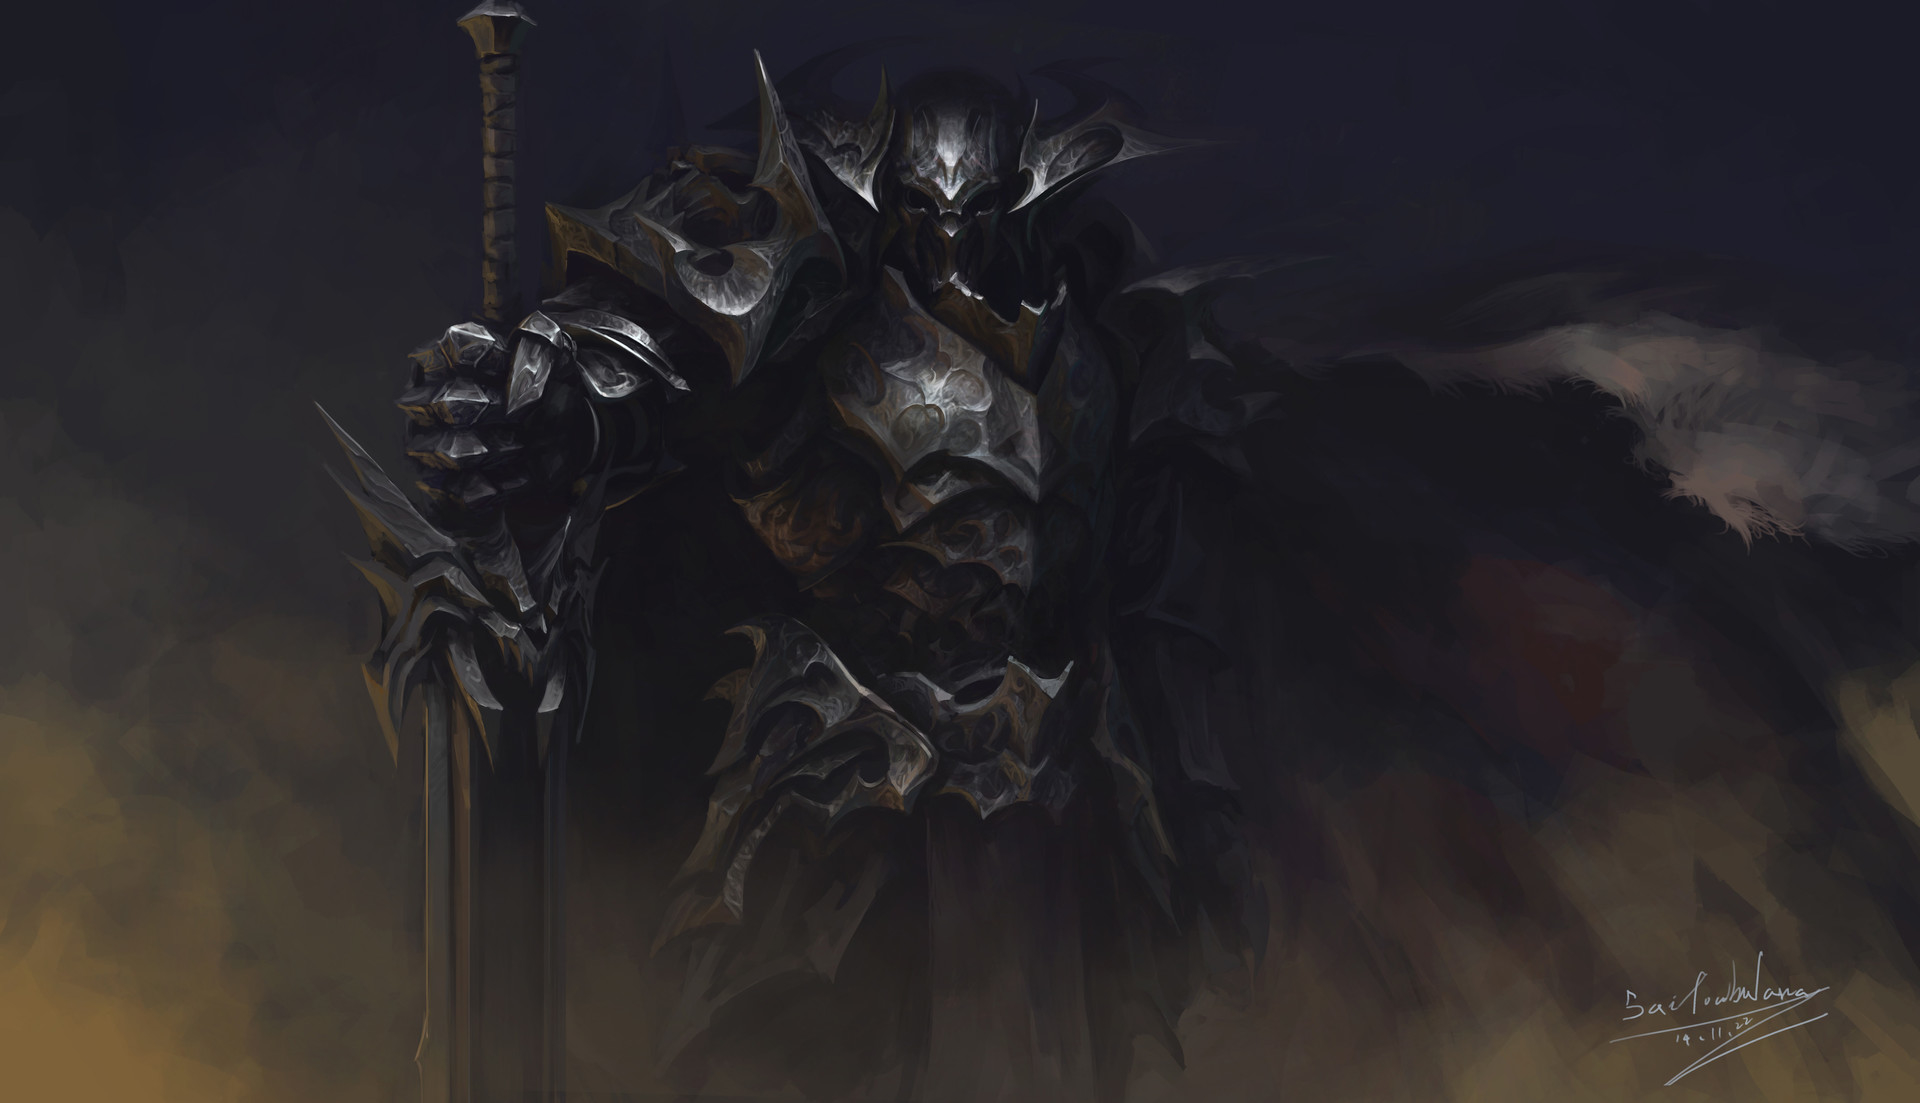 Black Knight Eternals Art 2020 Wallpaper Hd Fantasy 4k Wallpapers Images Photos And Background